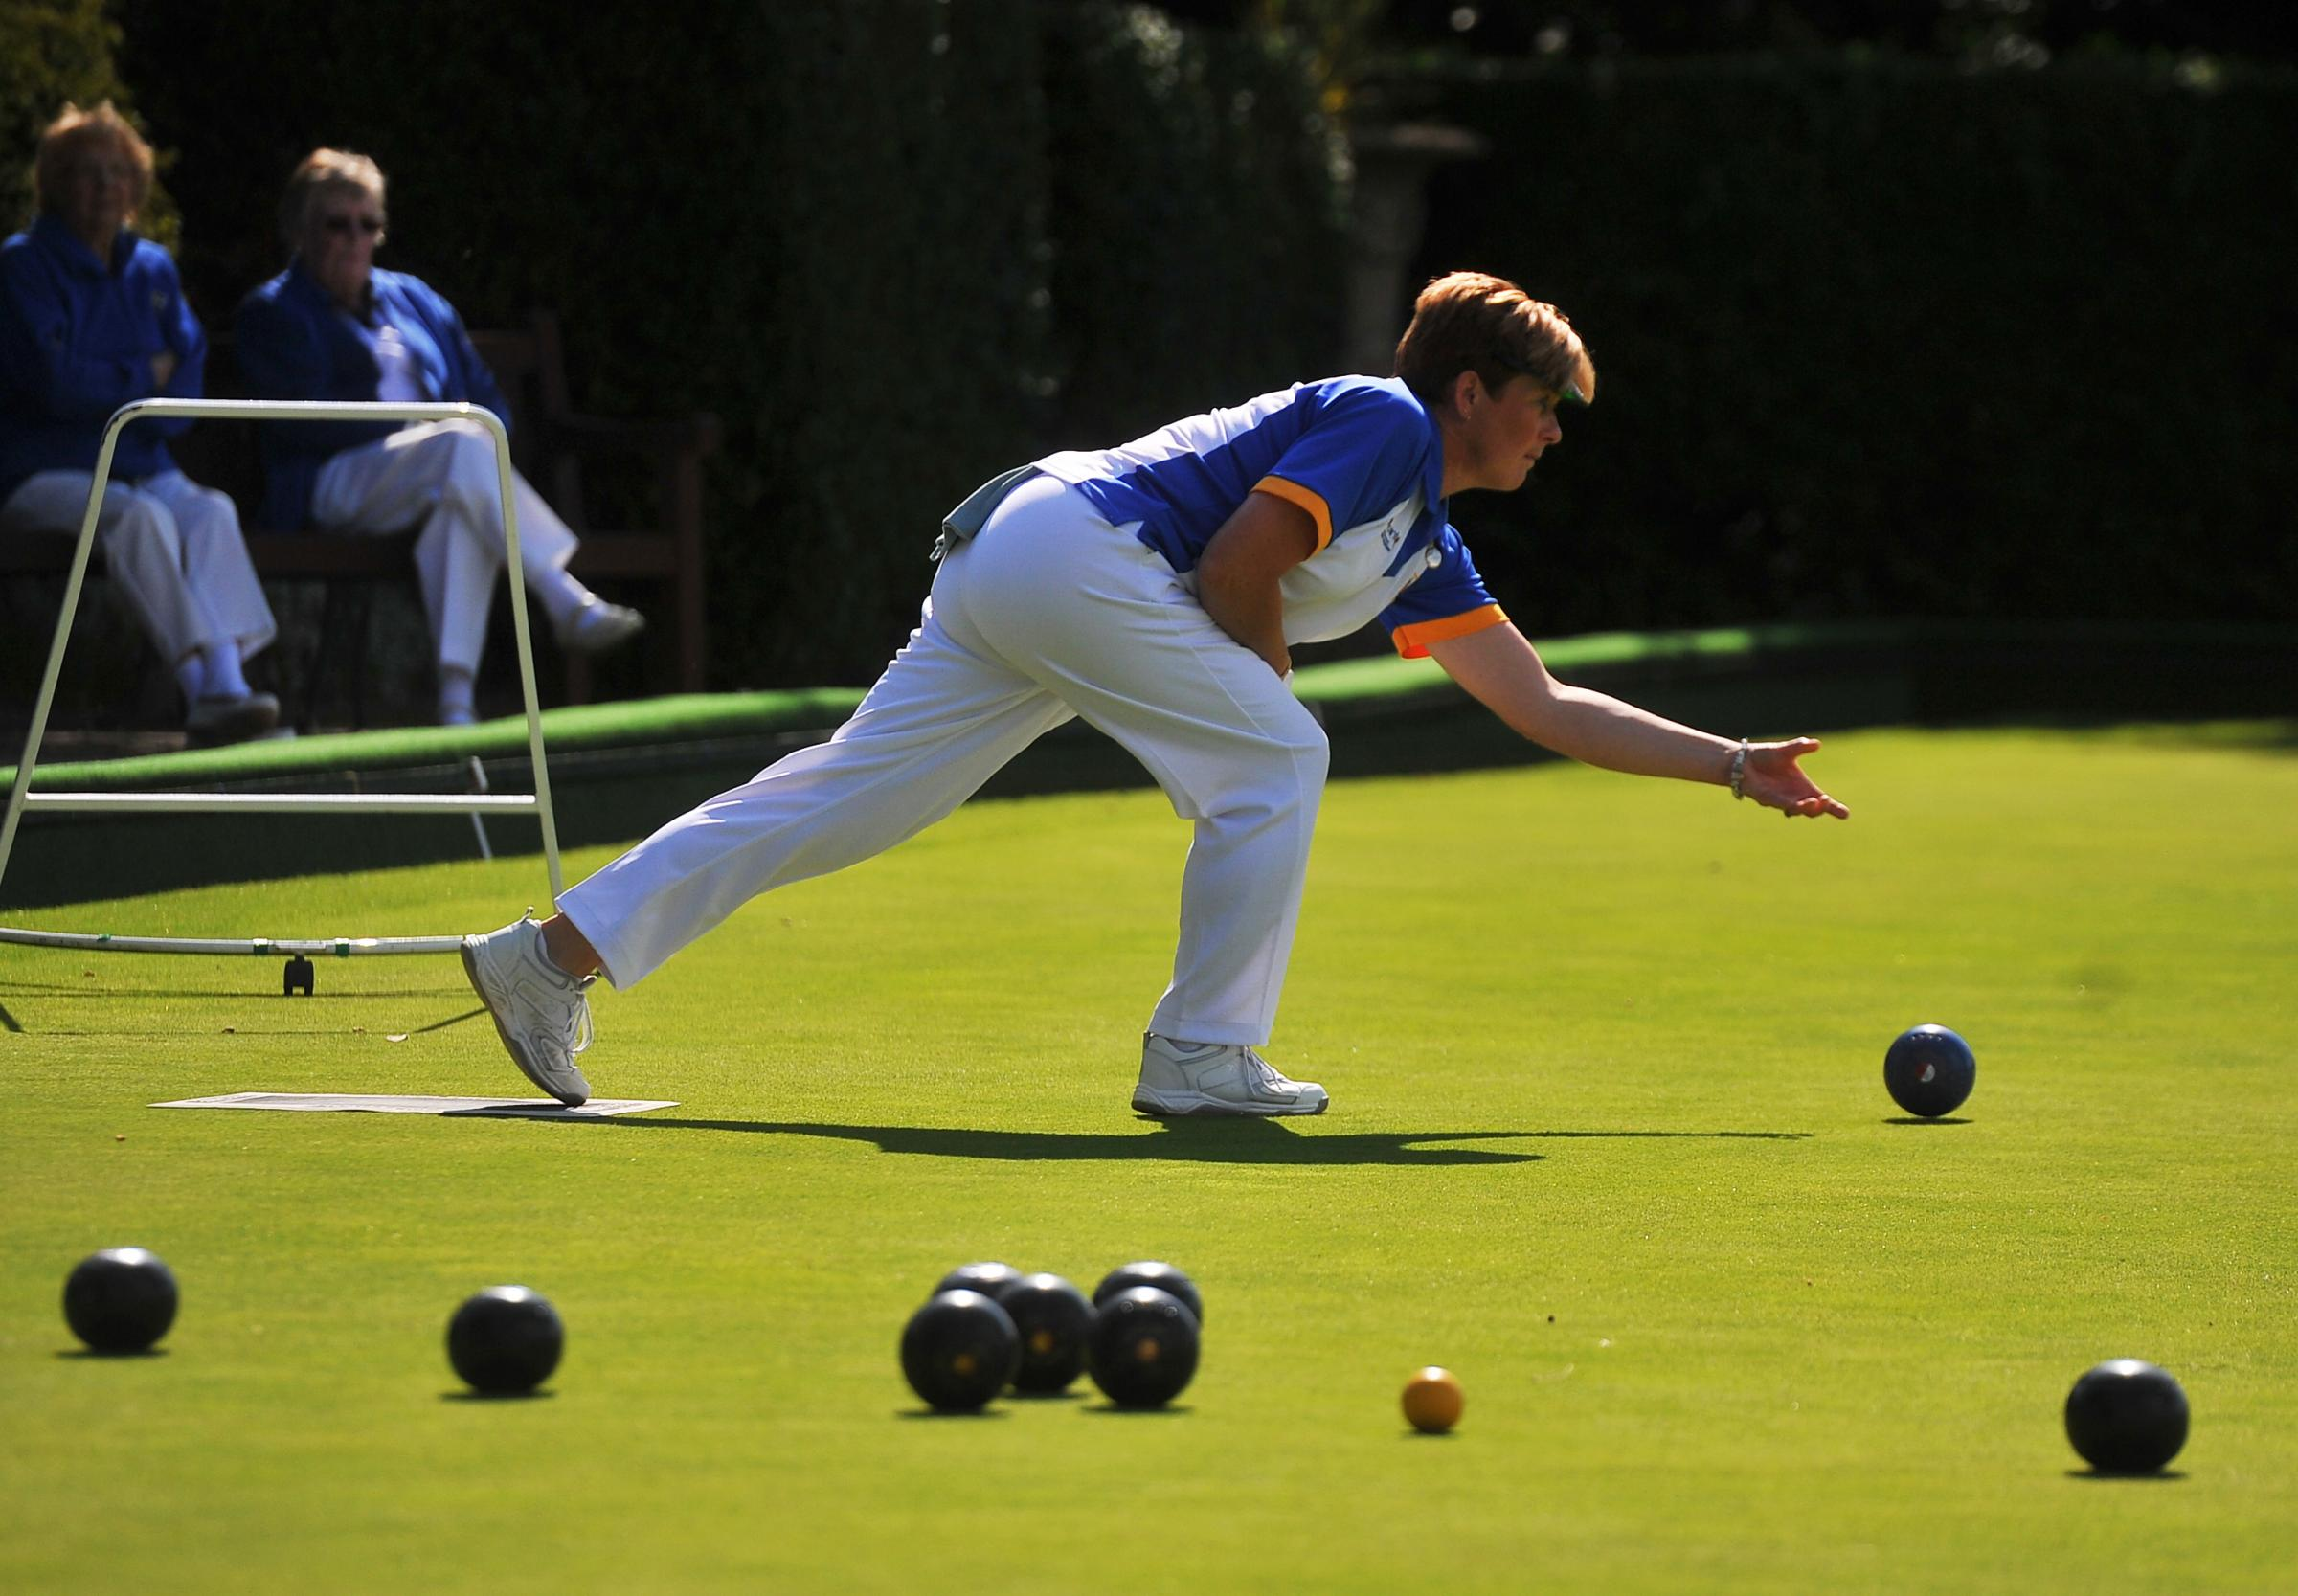 Swindon & District Womens Bowls finals , at Westlecott Bowls Club..Pic - Alison Fail.Date 6/9/15.Pic - By Dave Cox.